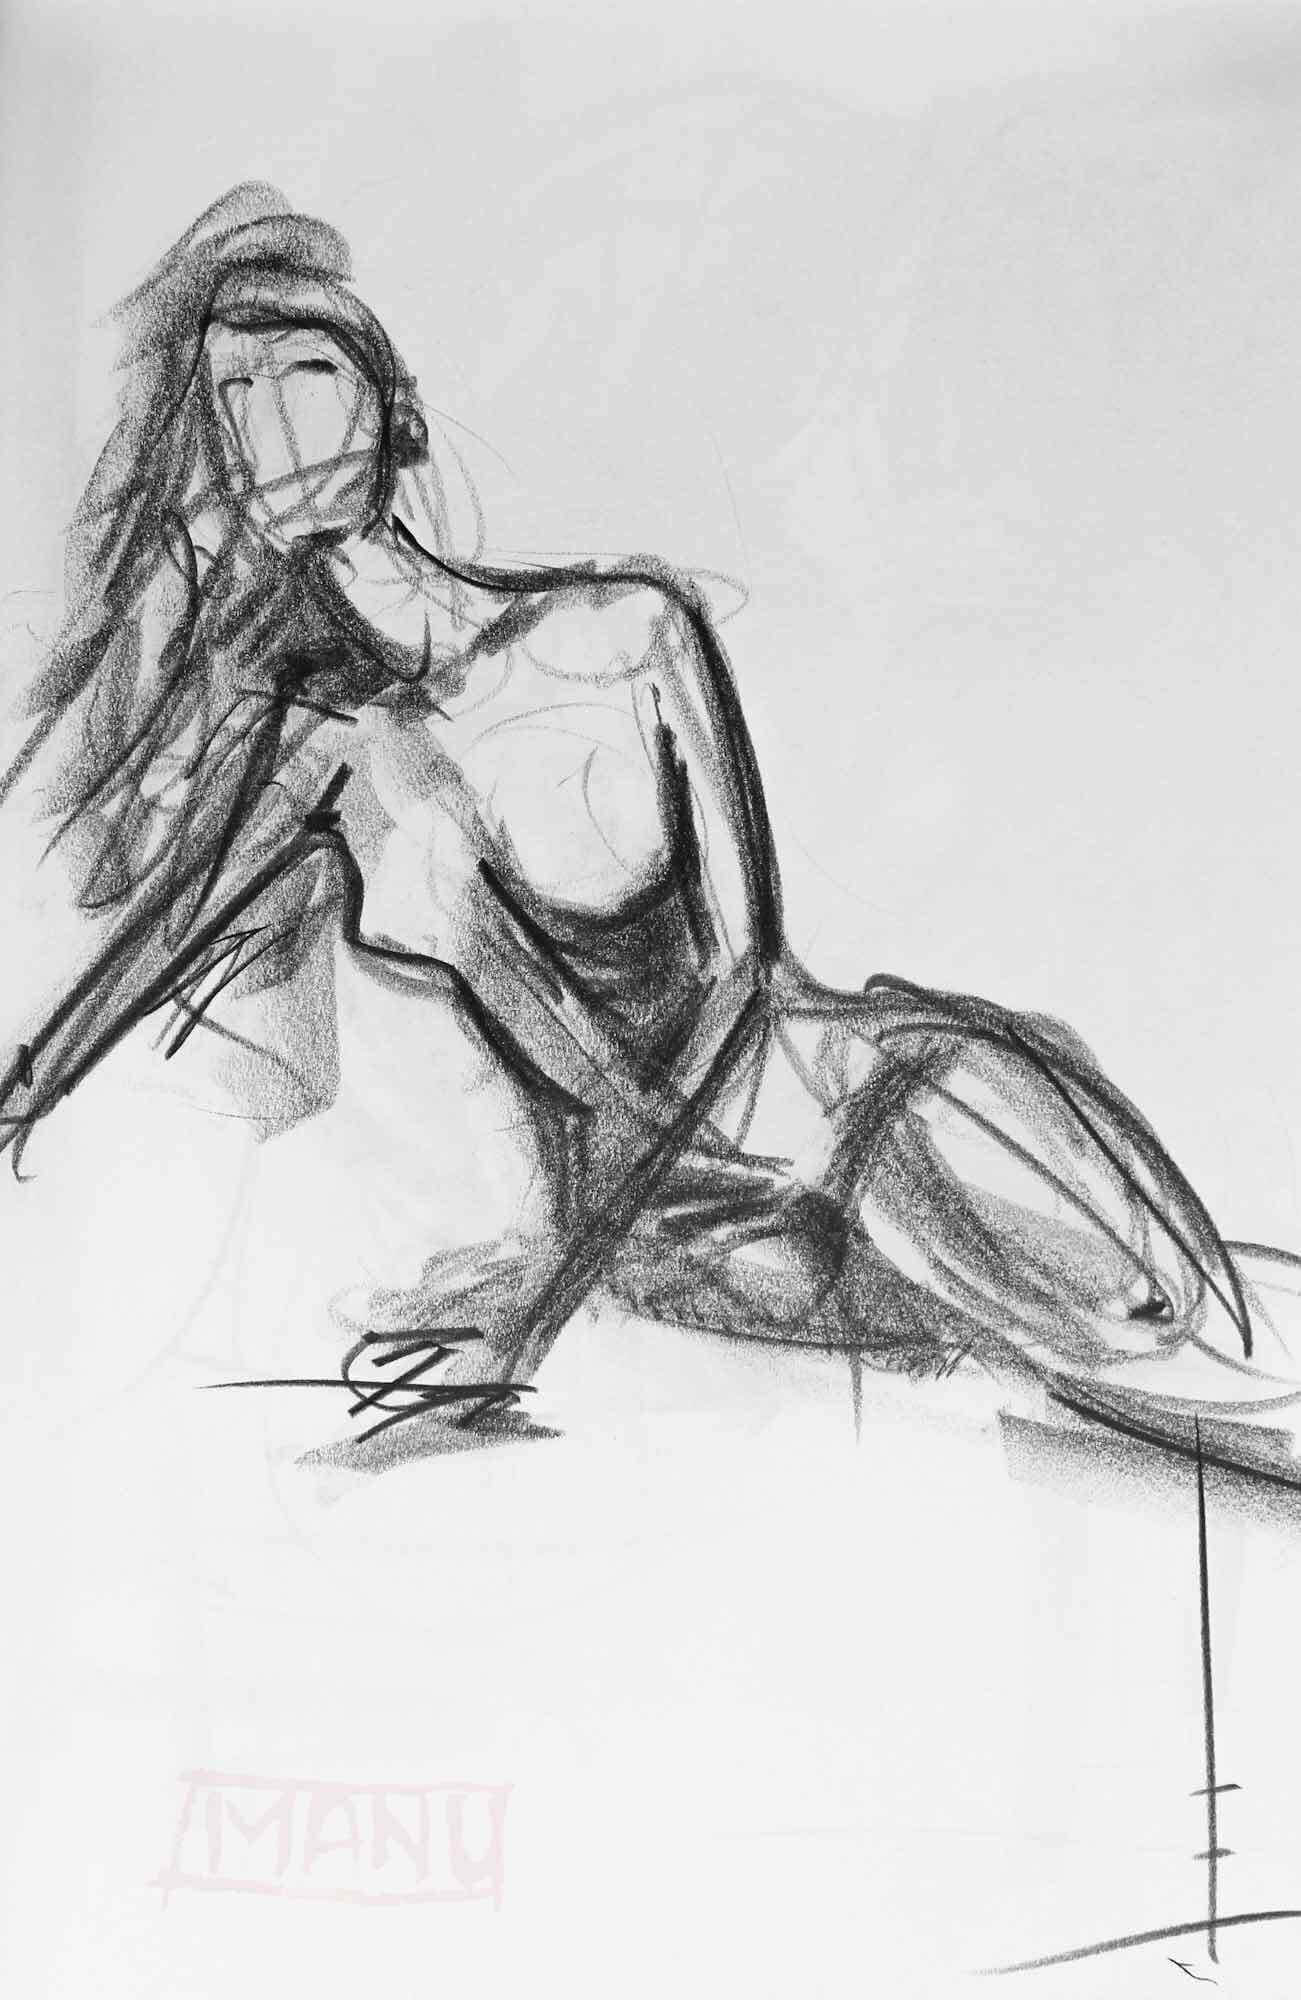 Sketch Drawing · Emmanuele Cammarano - Artwork for sale shipping included